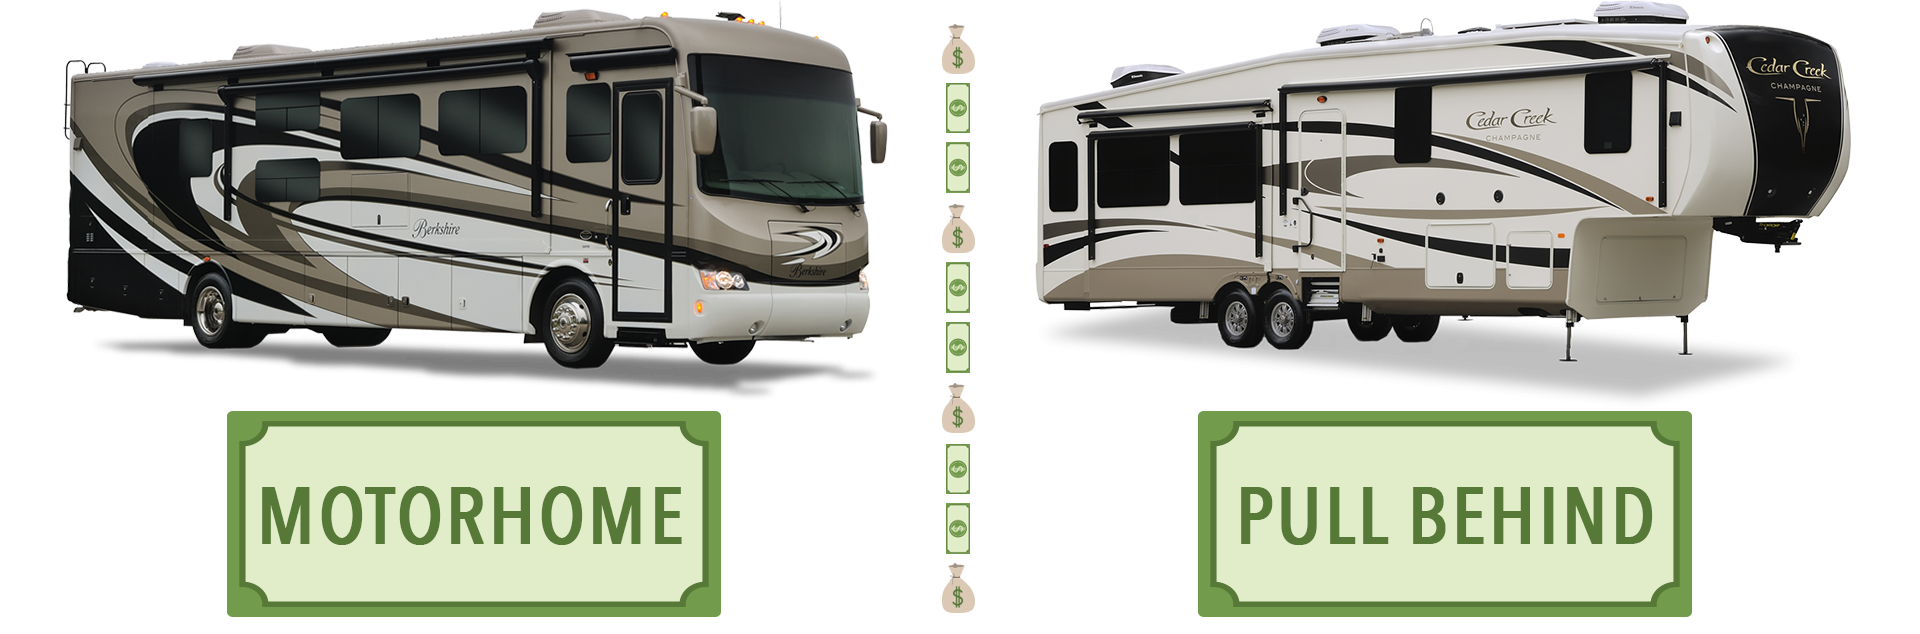 motorhome or pull behind cost